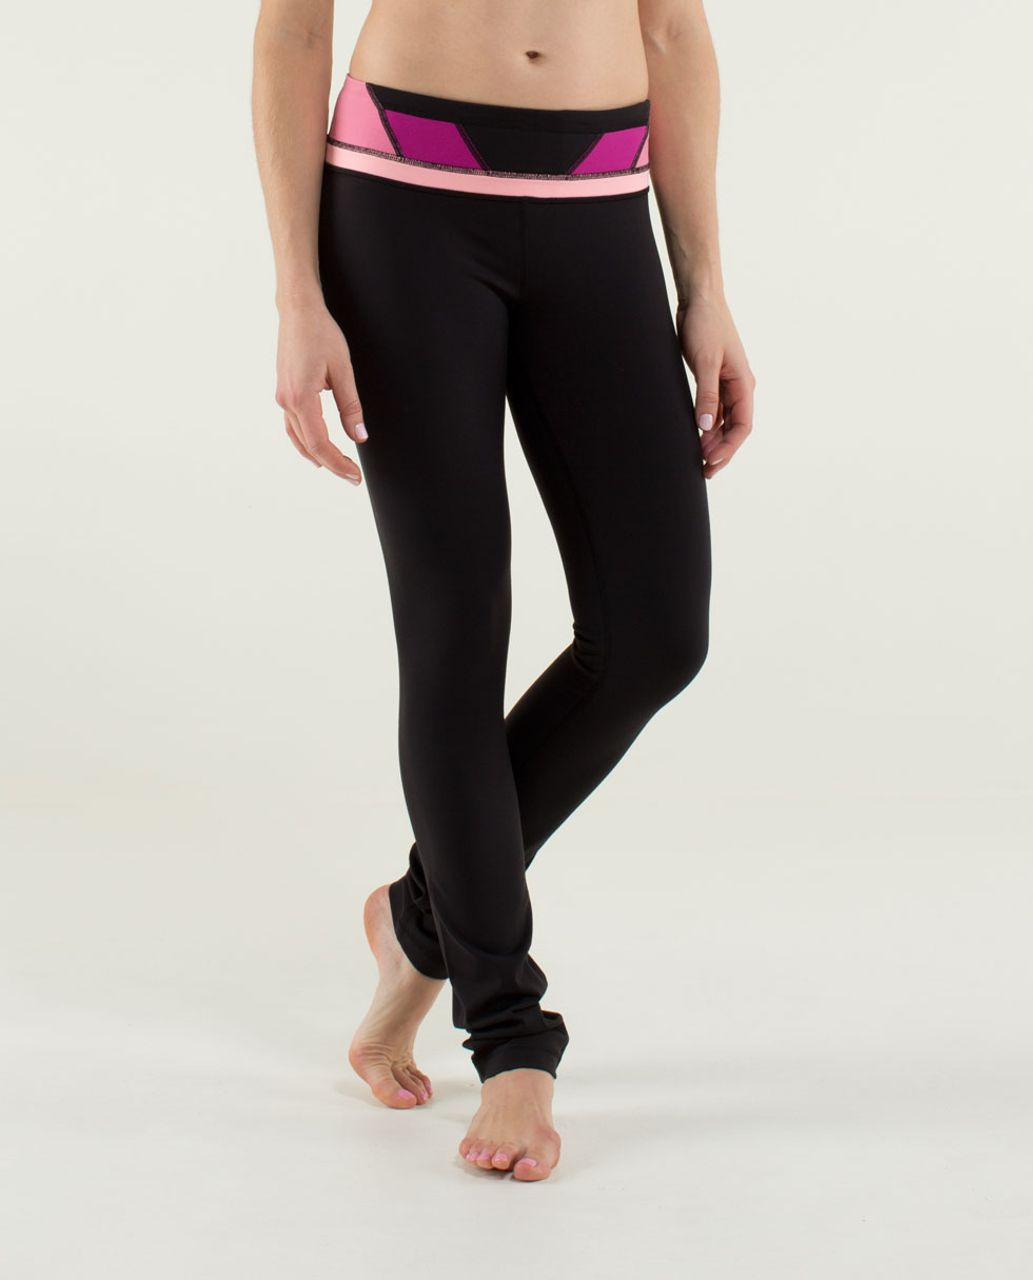 0257046e9 Lululemon Skinny Groove Pant  Full-On Luon - Black   Quilt Winter 13-12 -  lulu fanatics